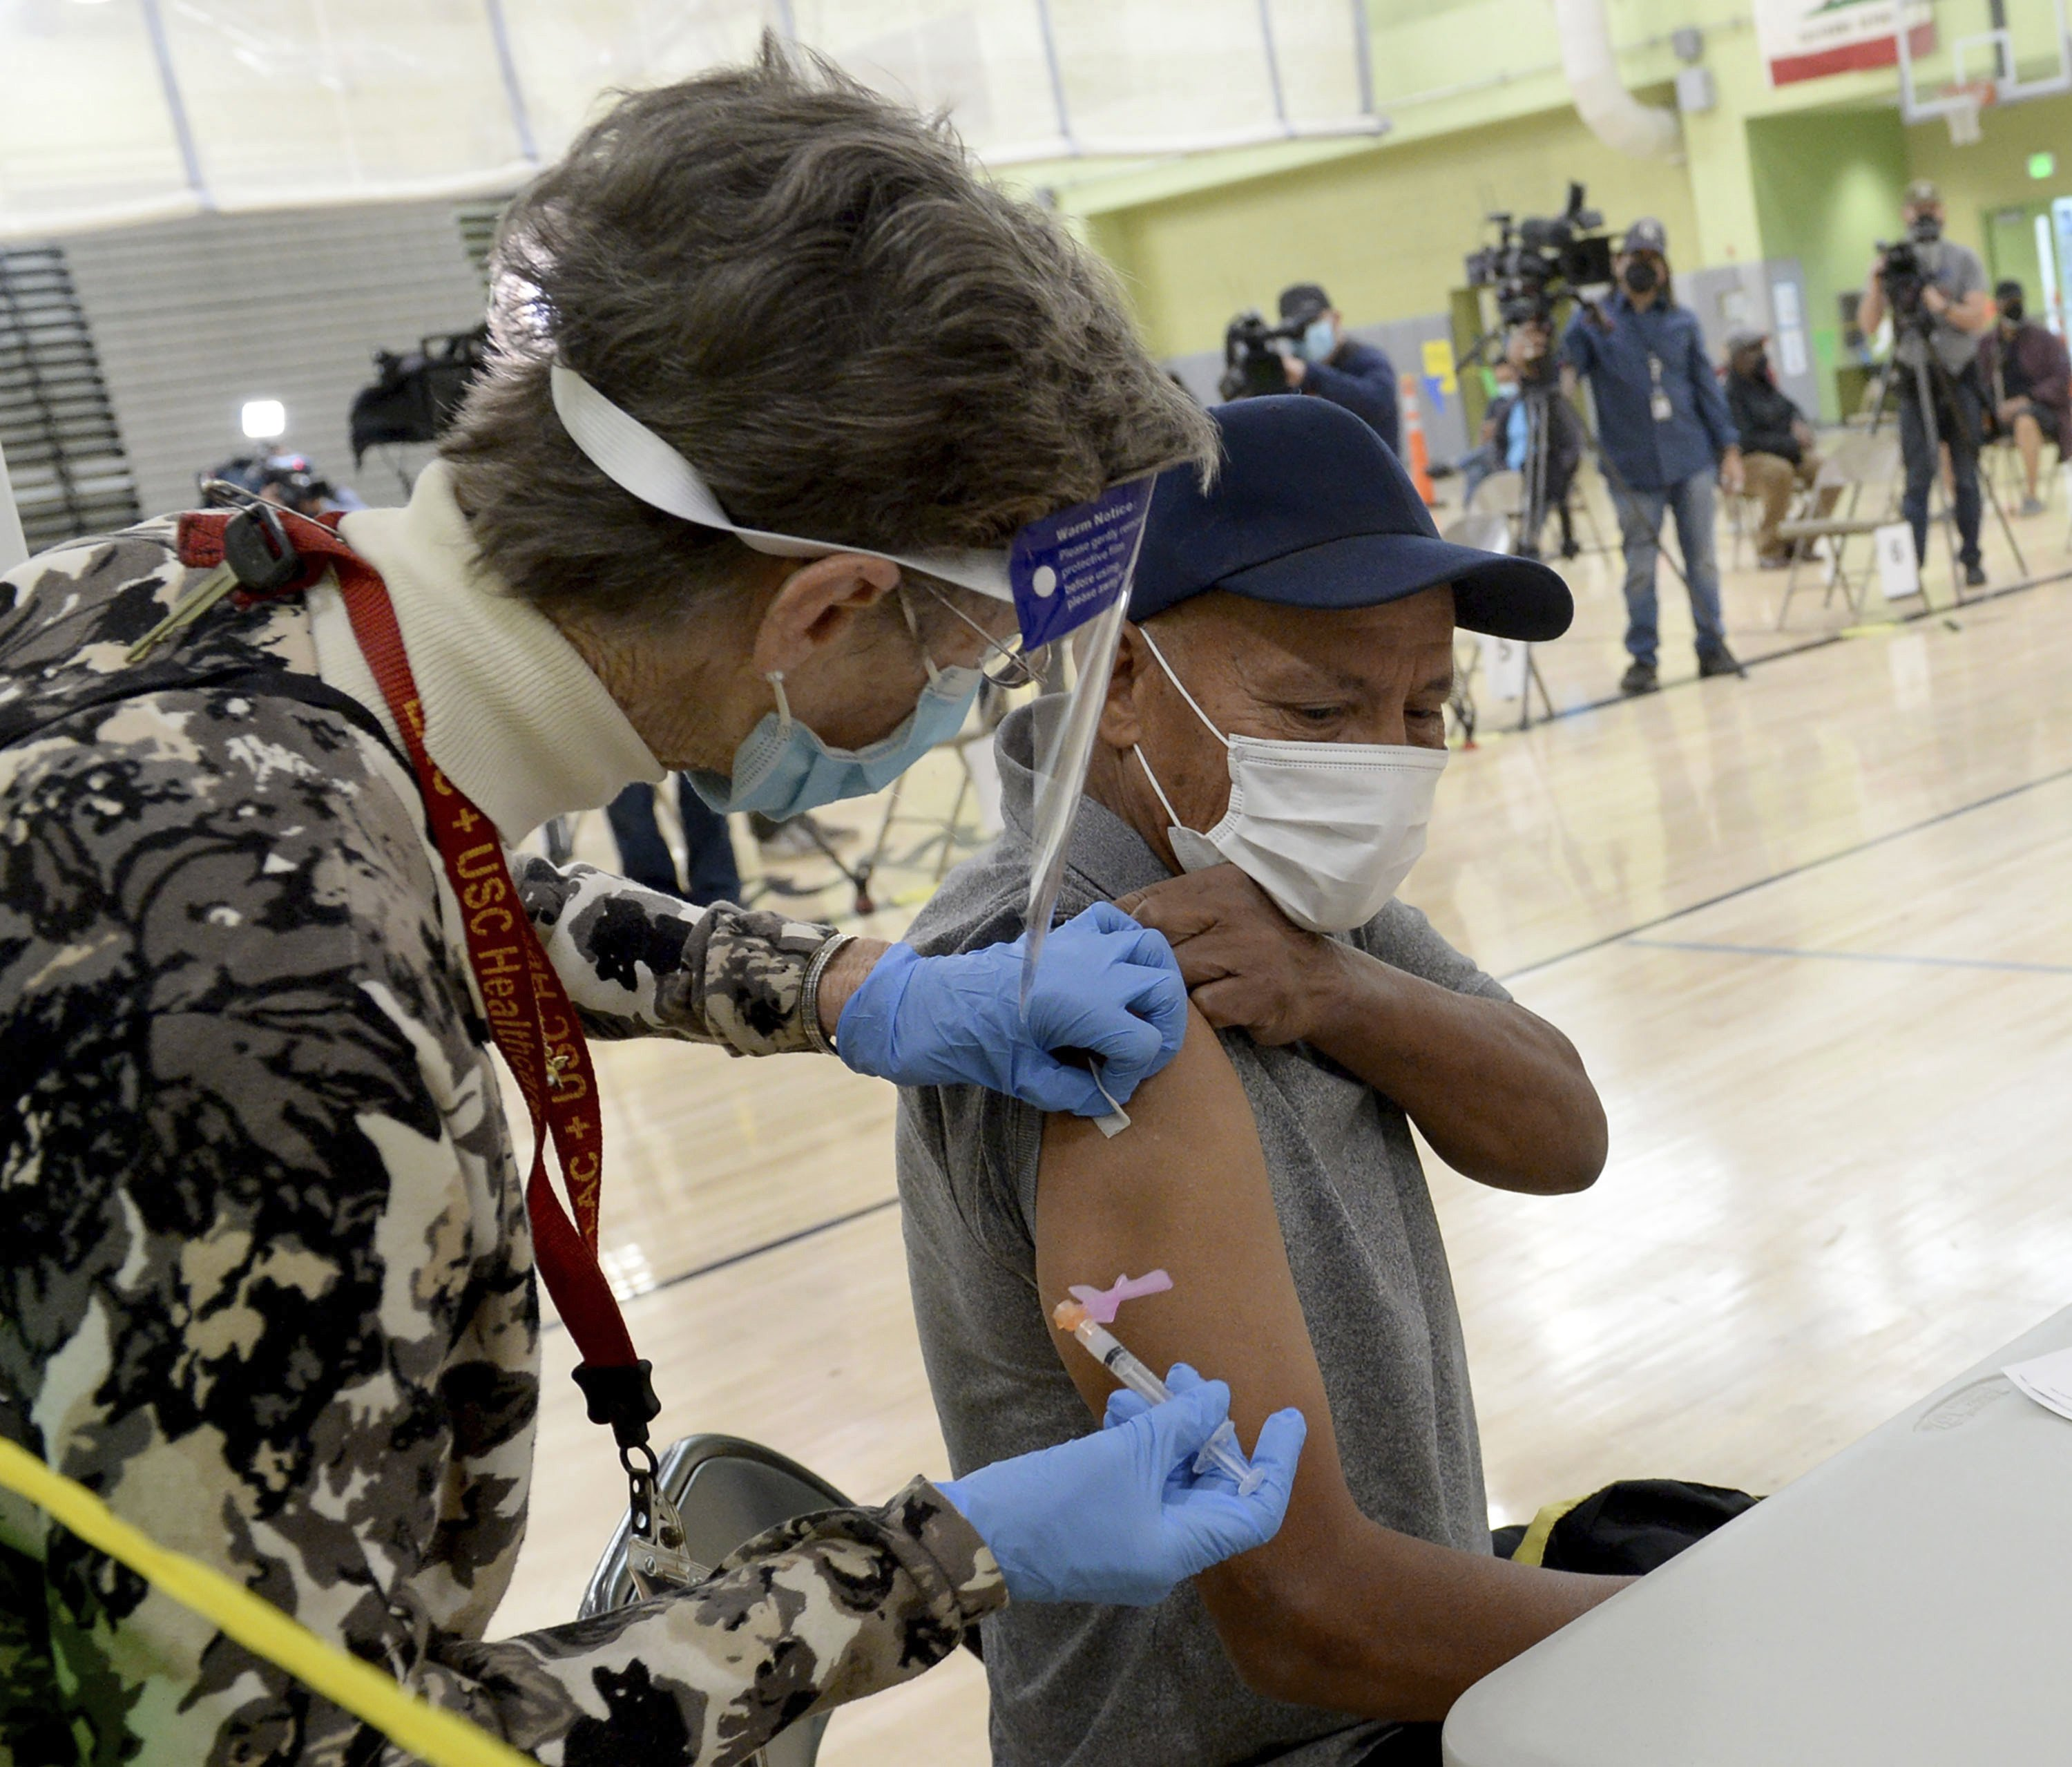 California virus aid plan would pay $600 each to millions